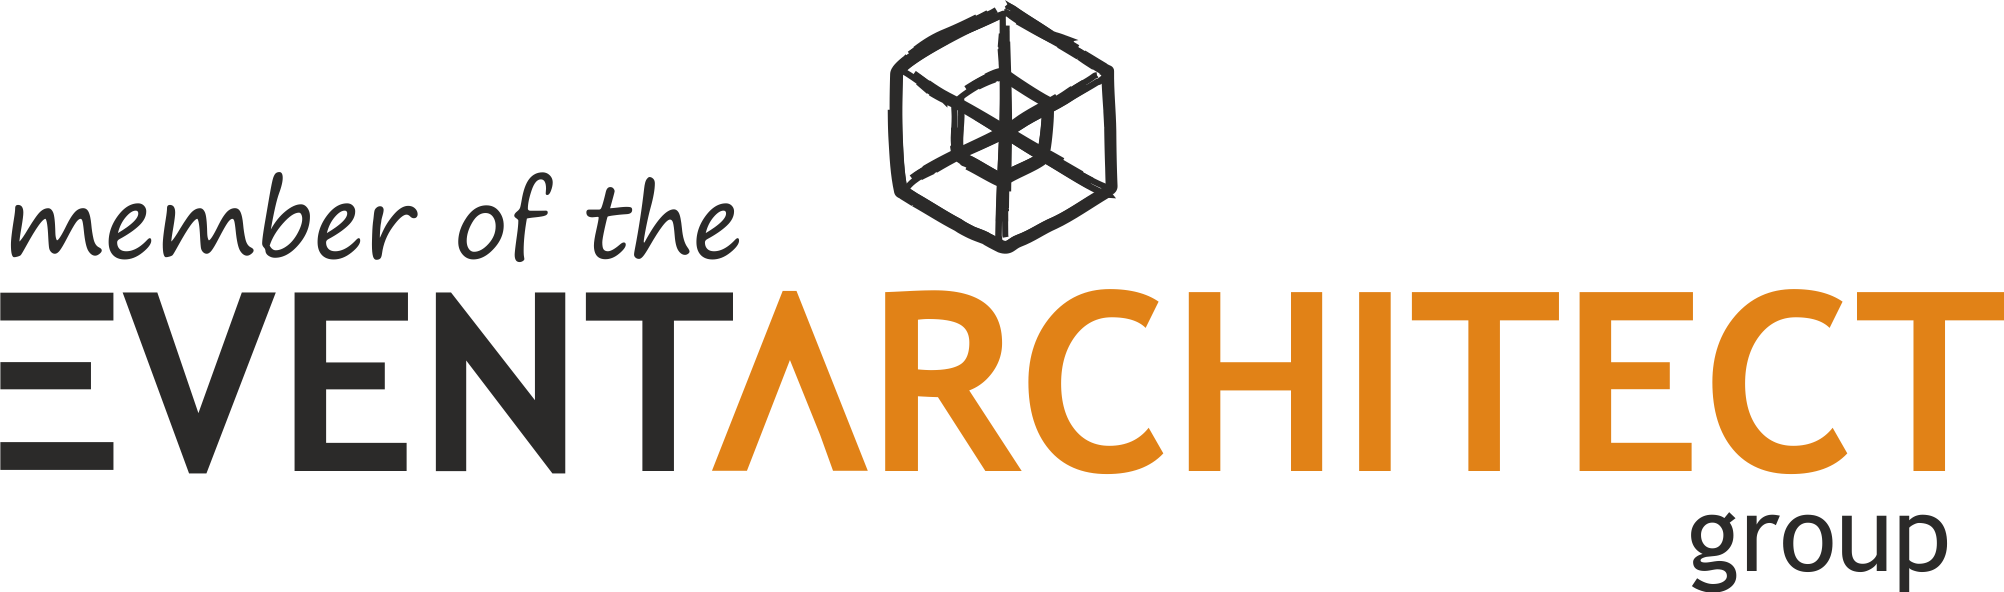 2019 member of the eventarchitect group